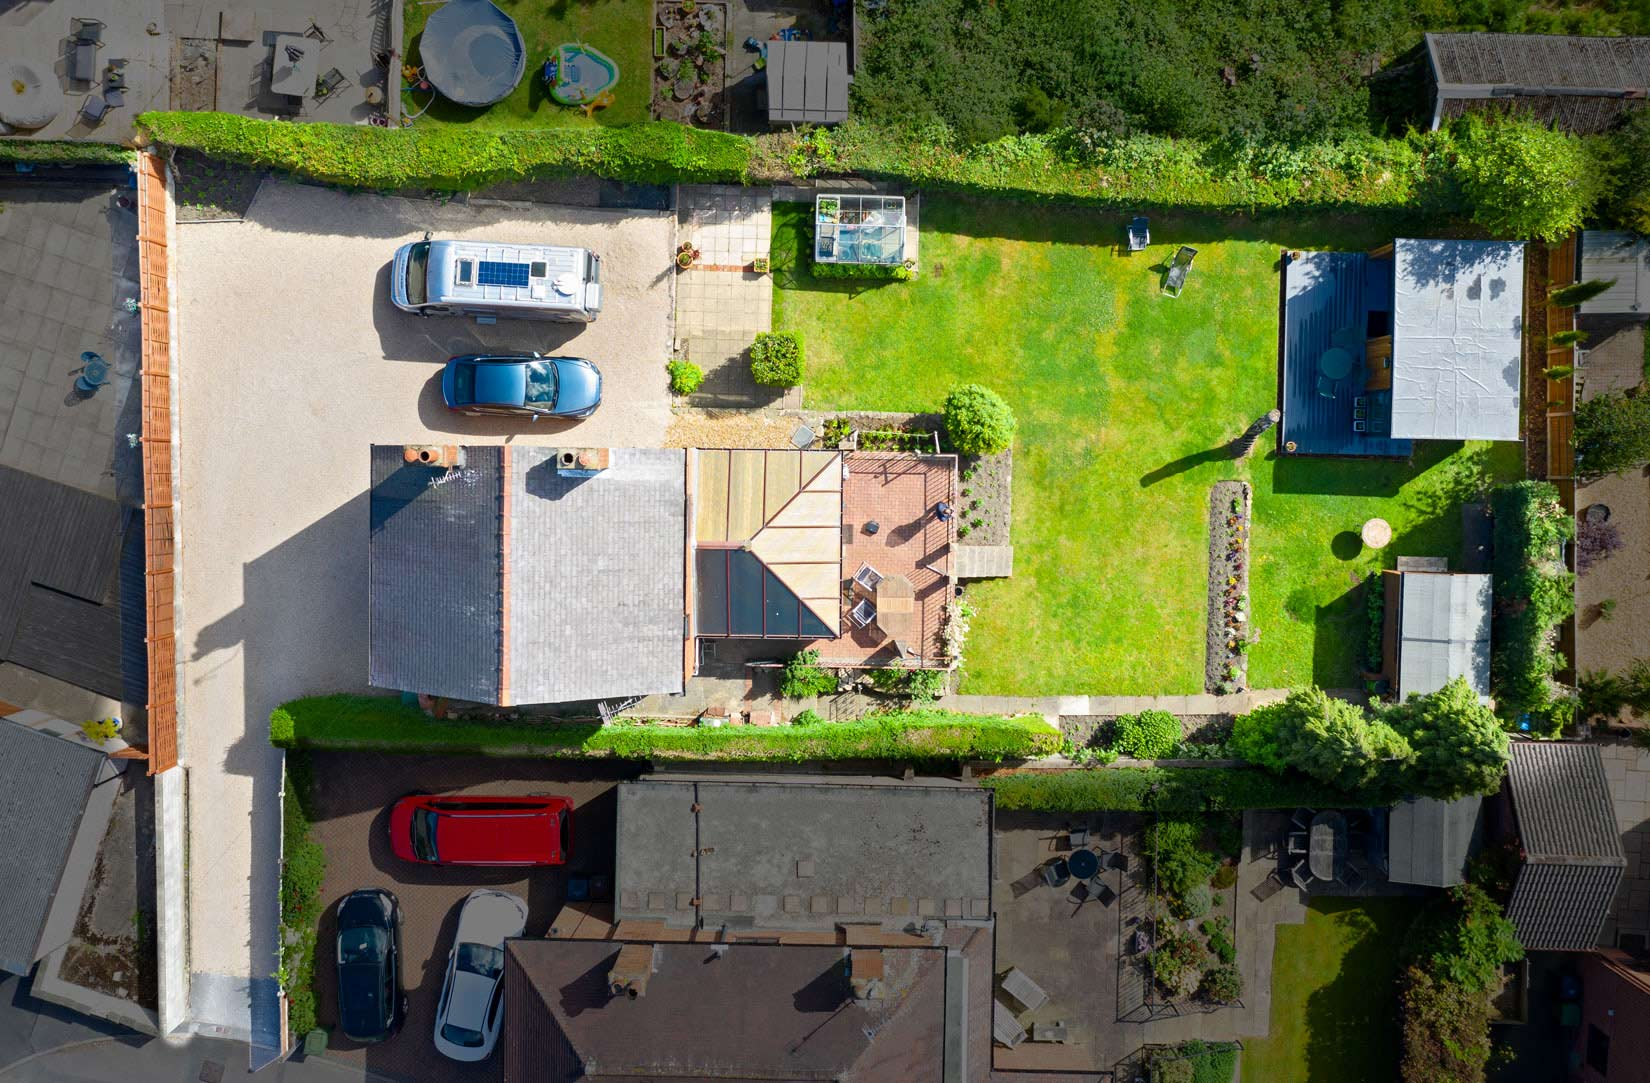 Drone image looking straight down to a house and garden